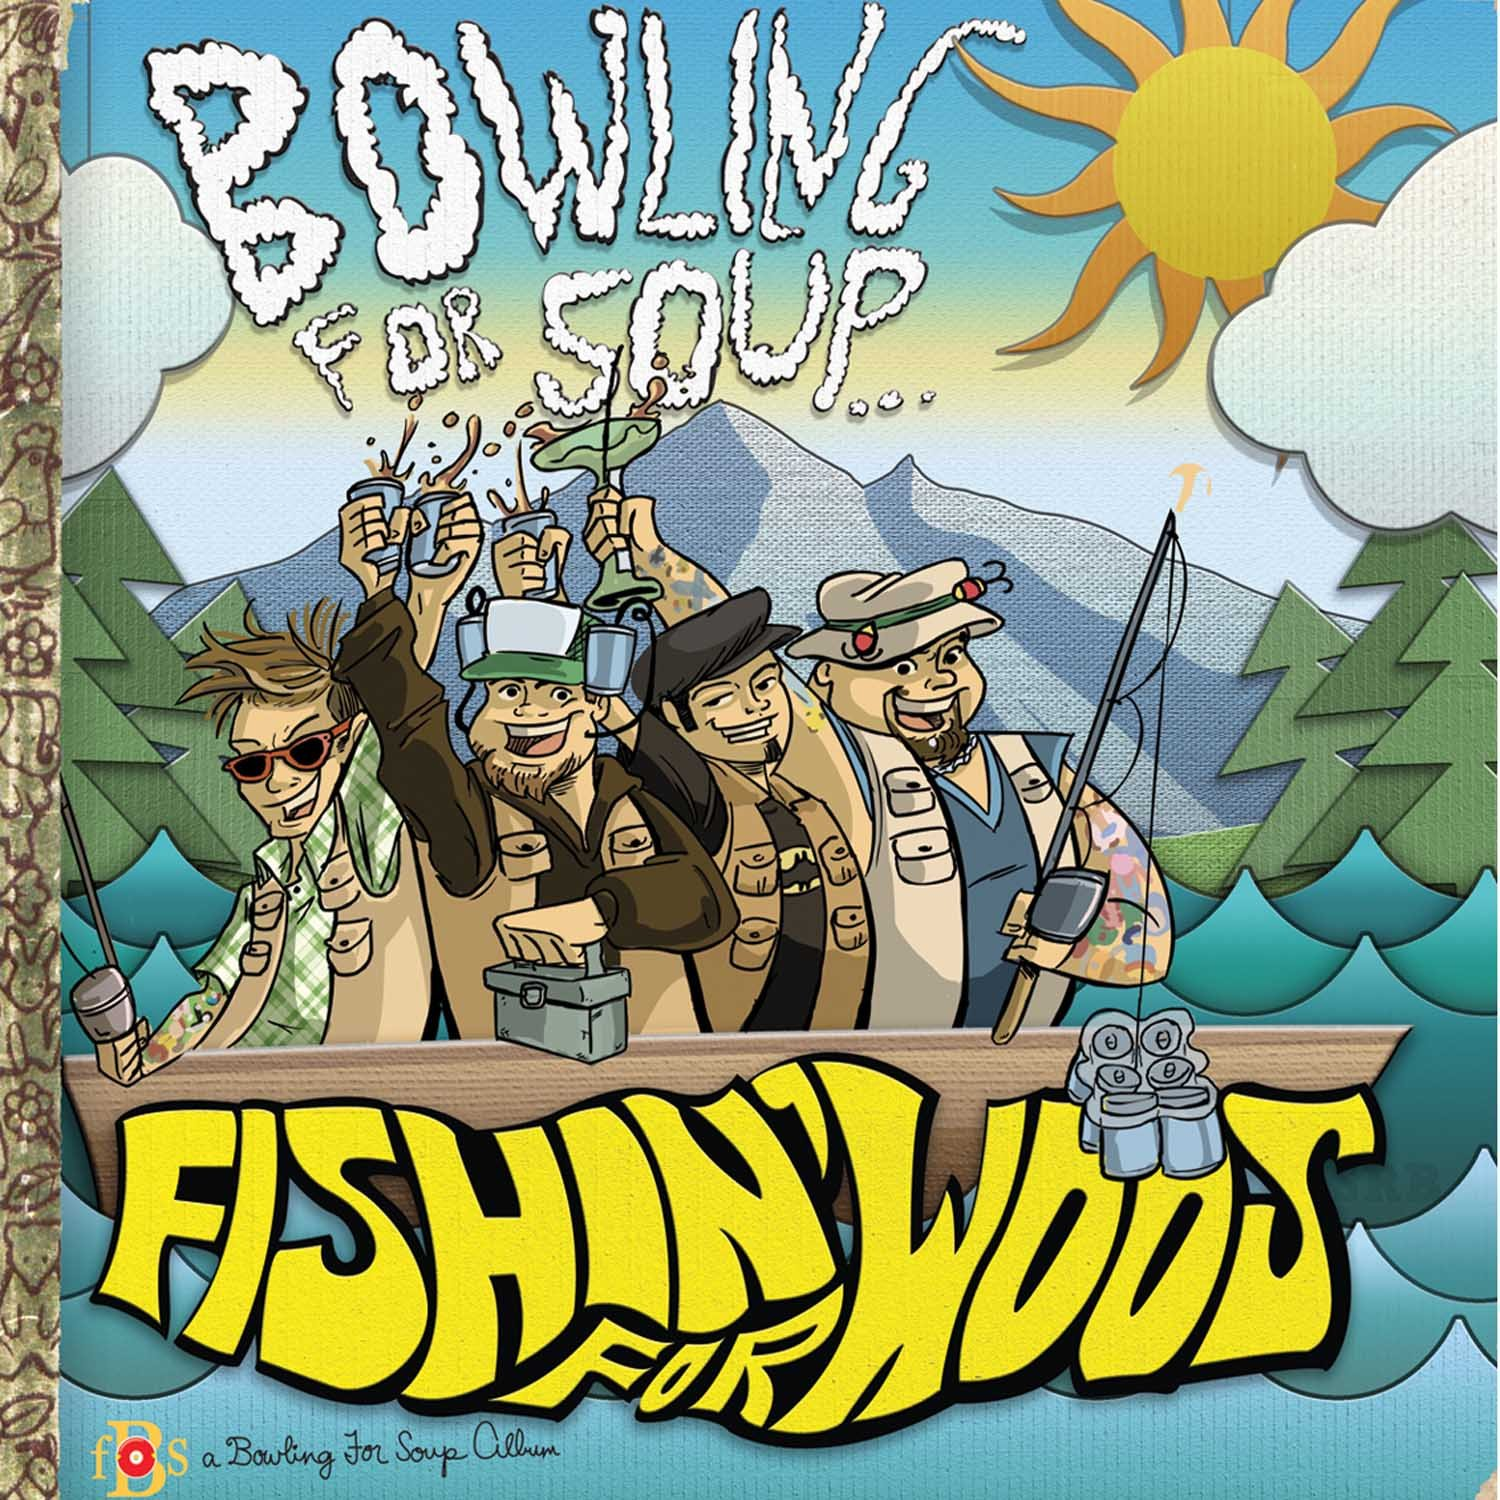 Bowling For Soup - Fishin\' For Woos - Amazon.com Music